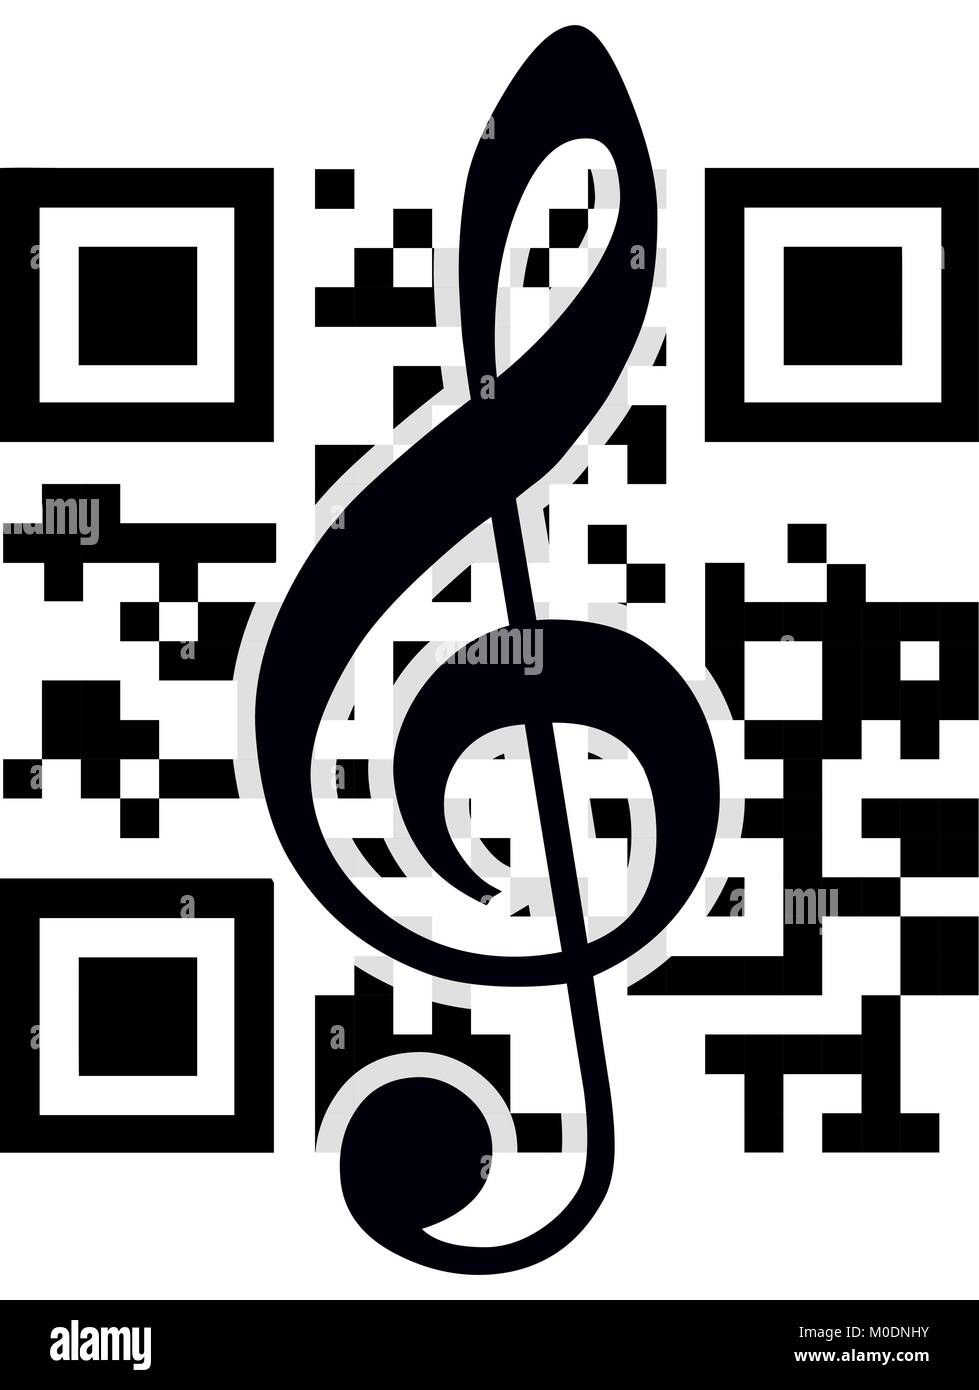 2D barcode and treble clef. Vector illustration. - Stock Image